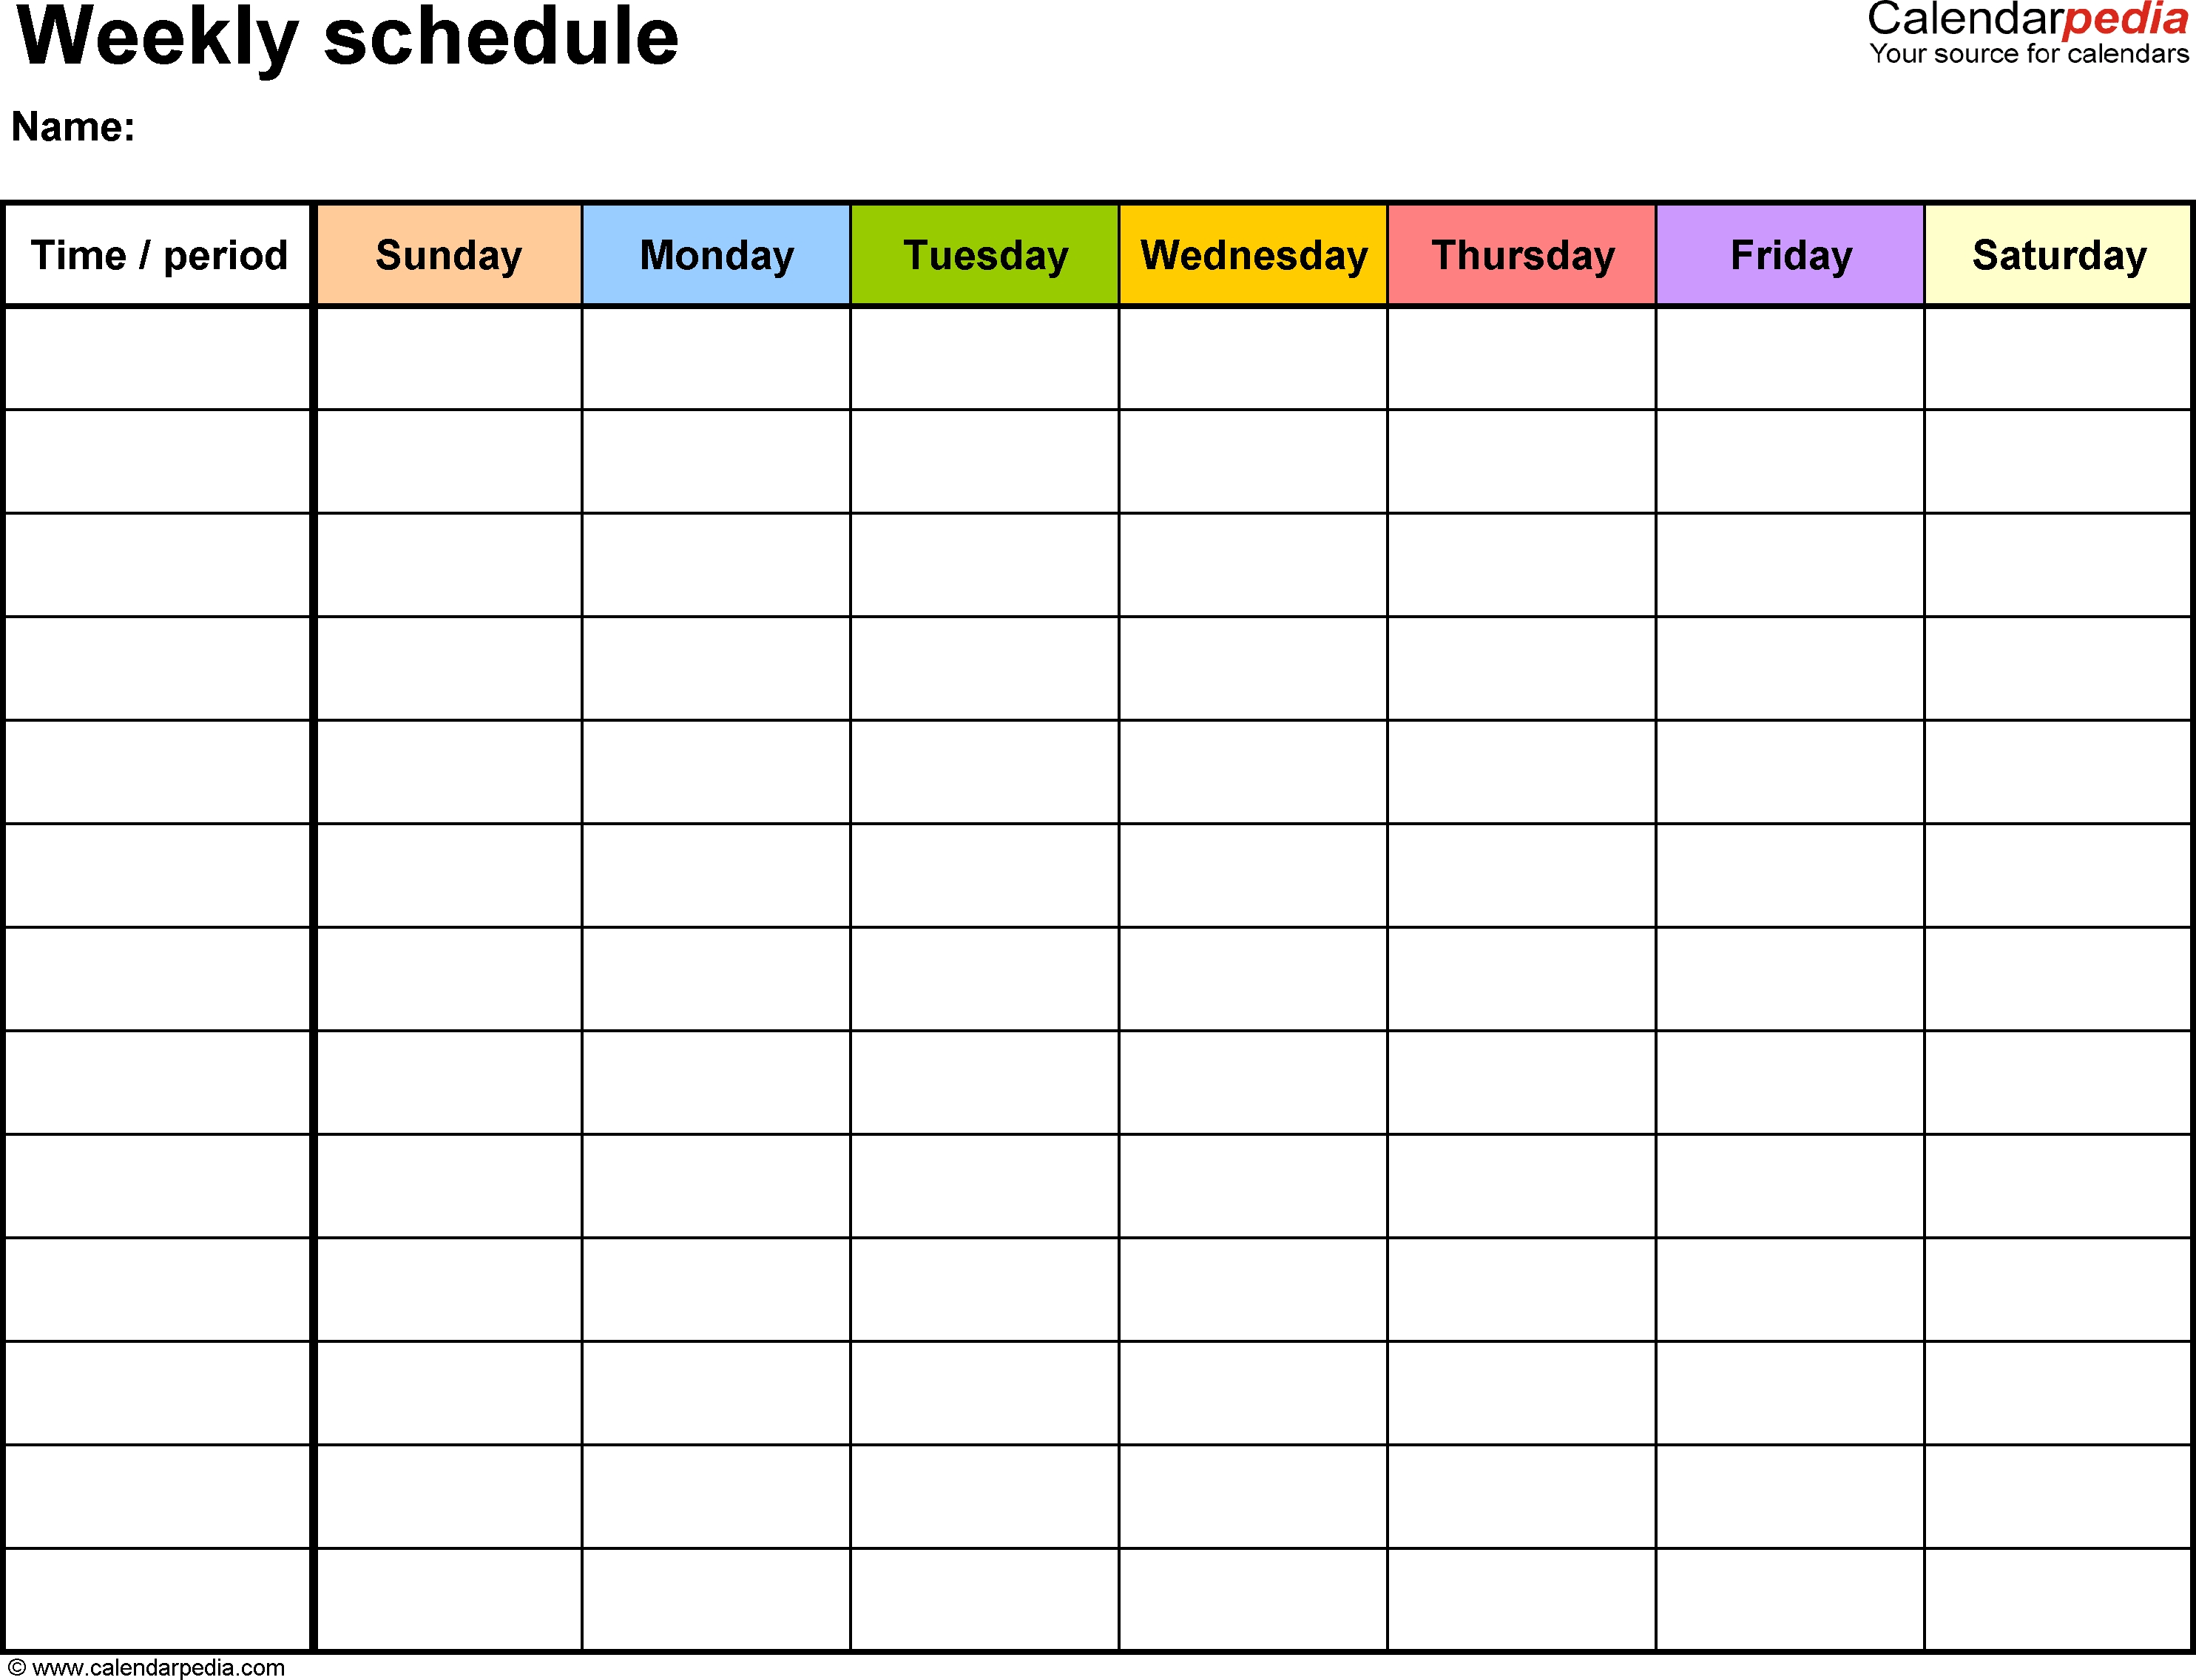 Weekly Schedule Template For Word Version 13: Landscape, 1-7 Week Calendar Template